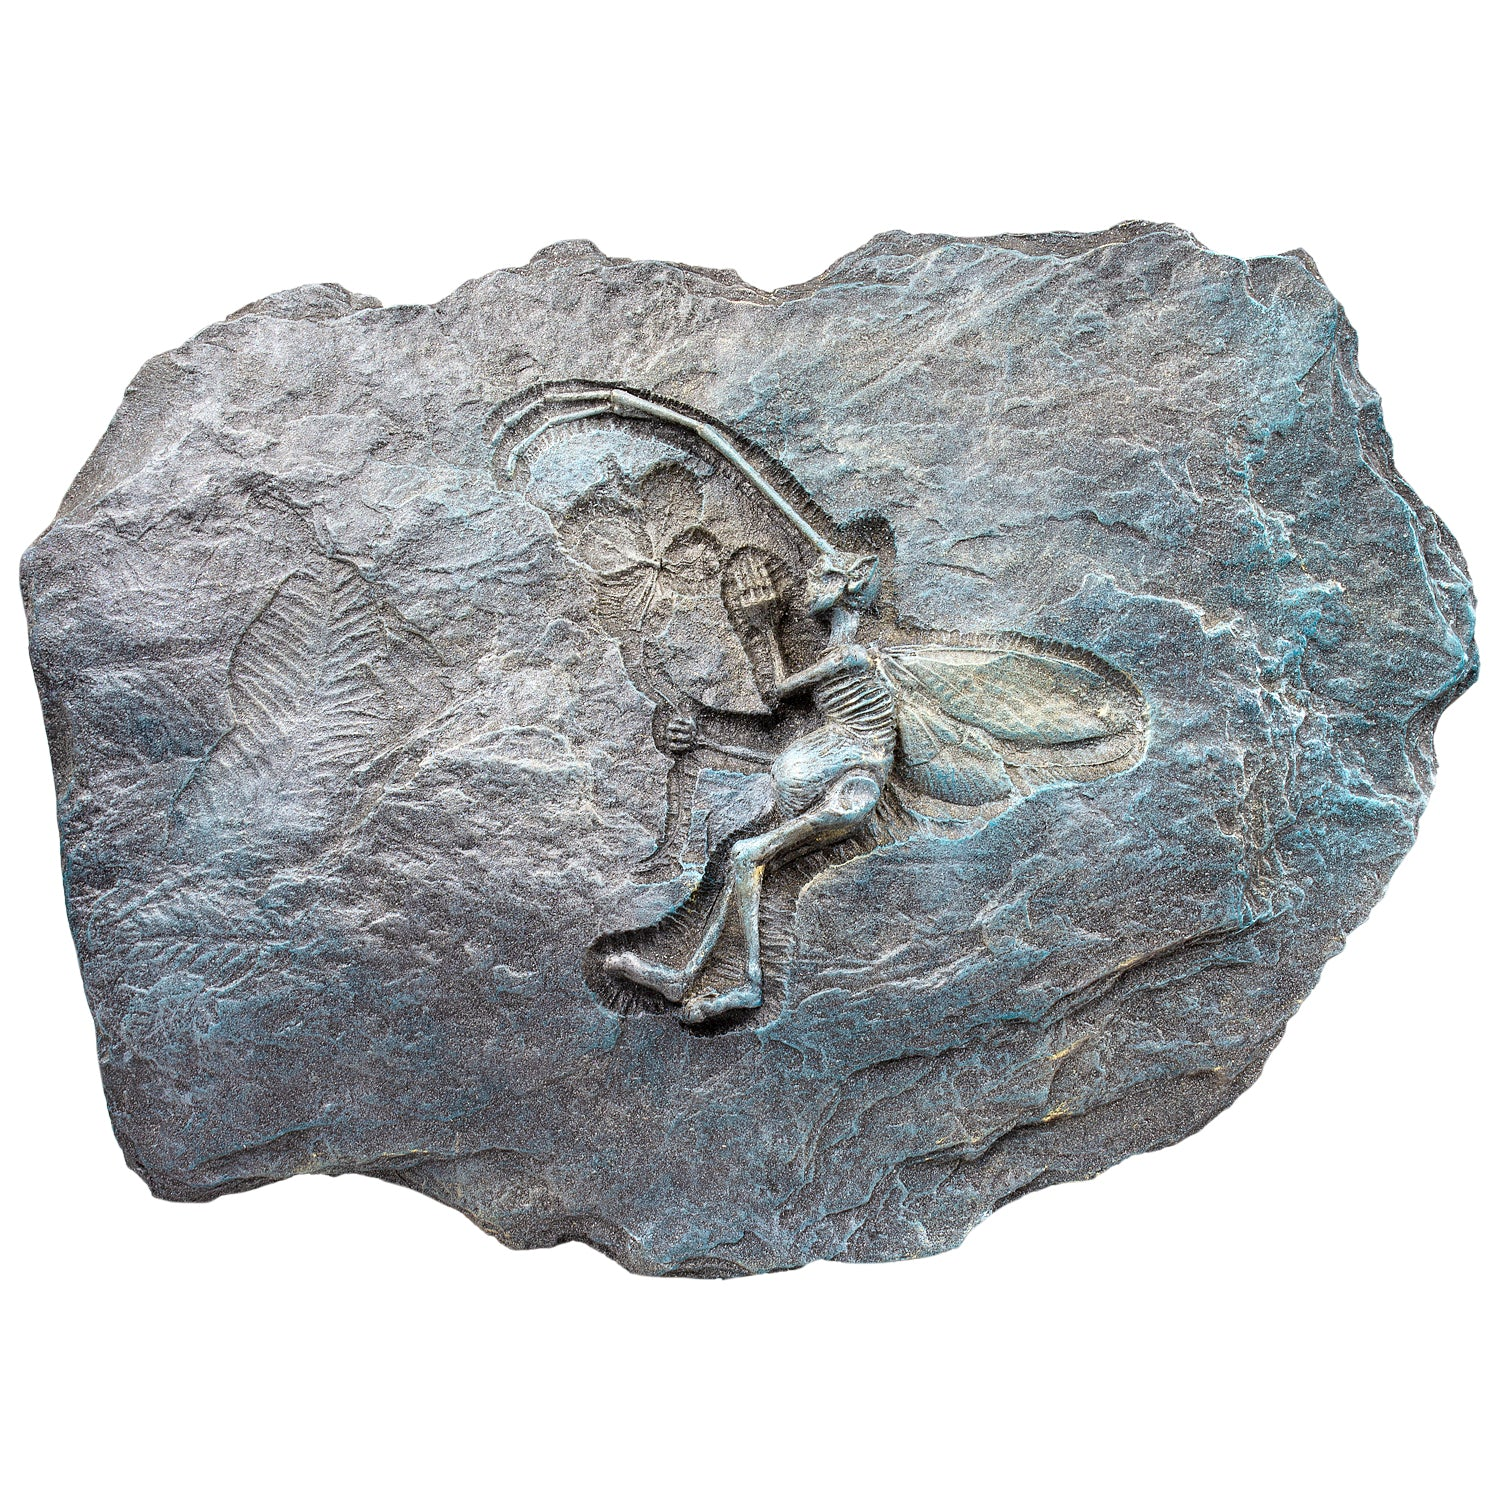 Fossil Fairies Garden Accessories and Cryptid Collectibles for Cryptozoology